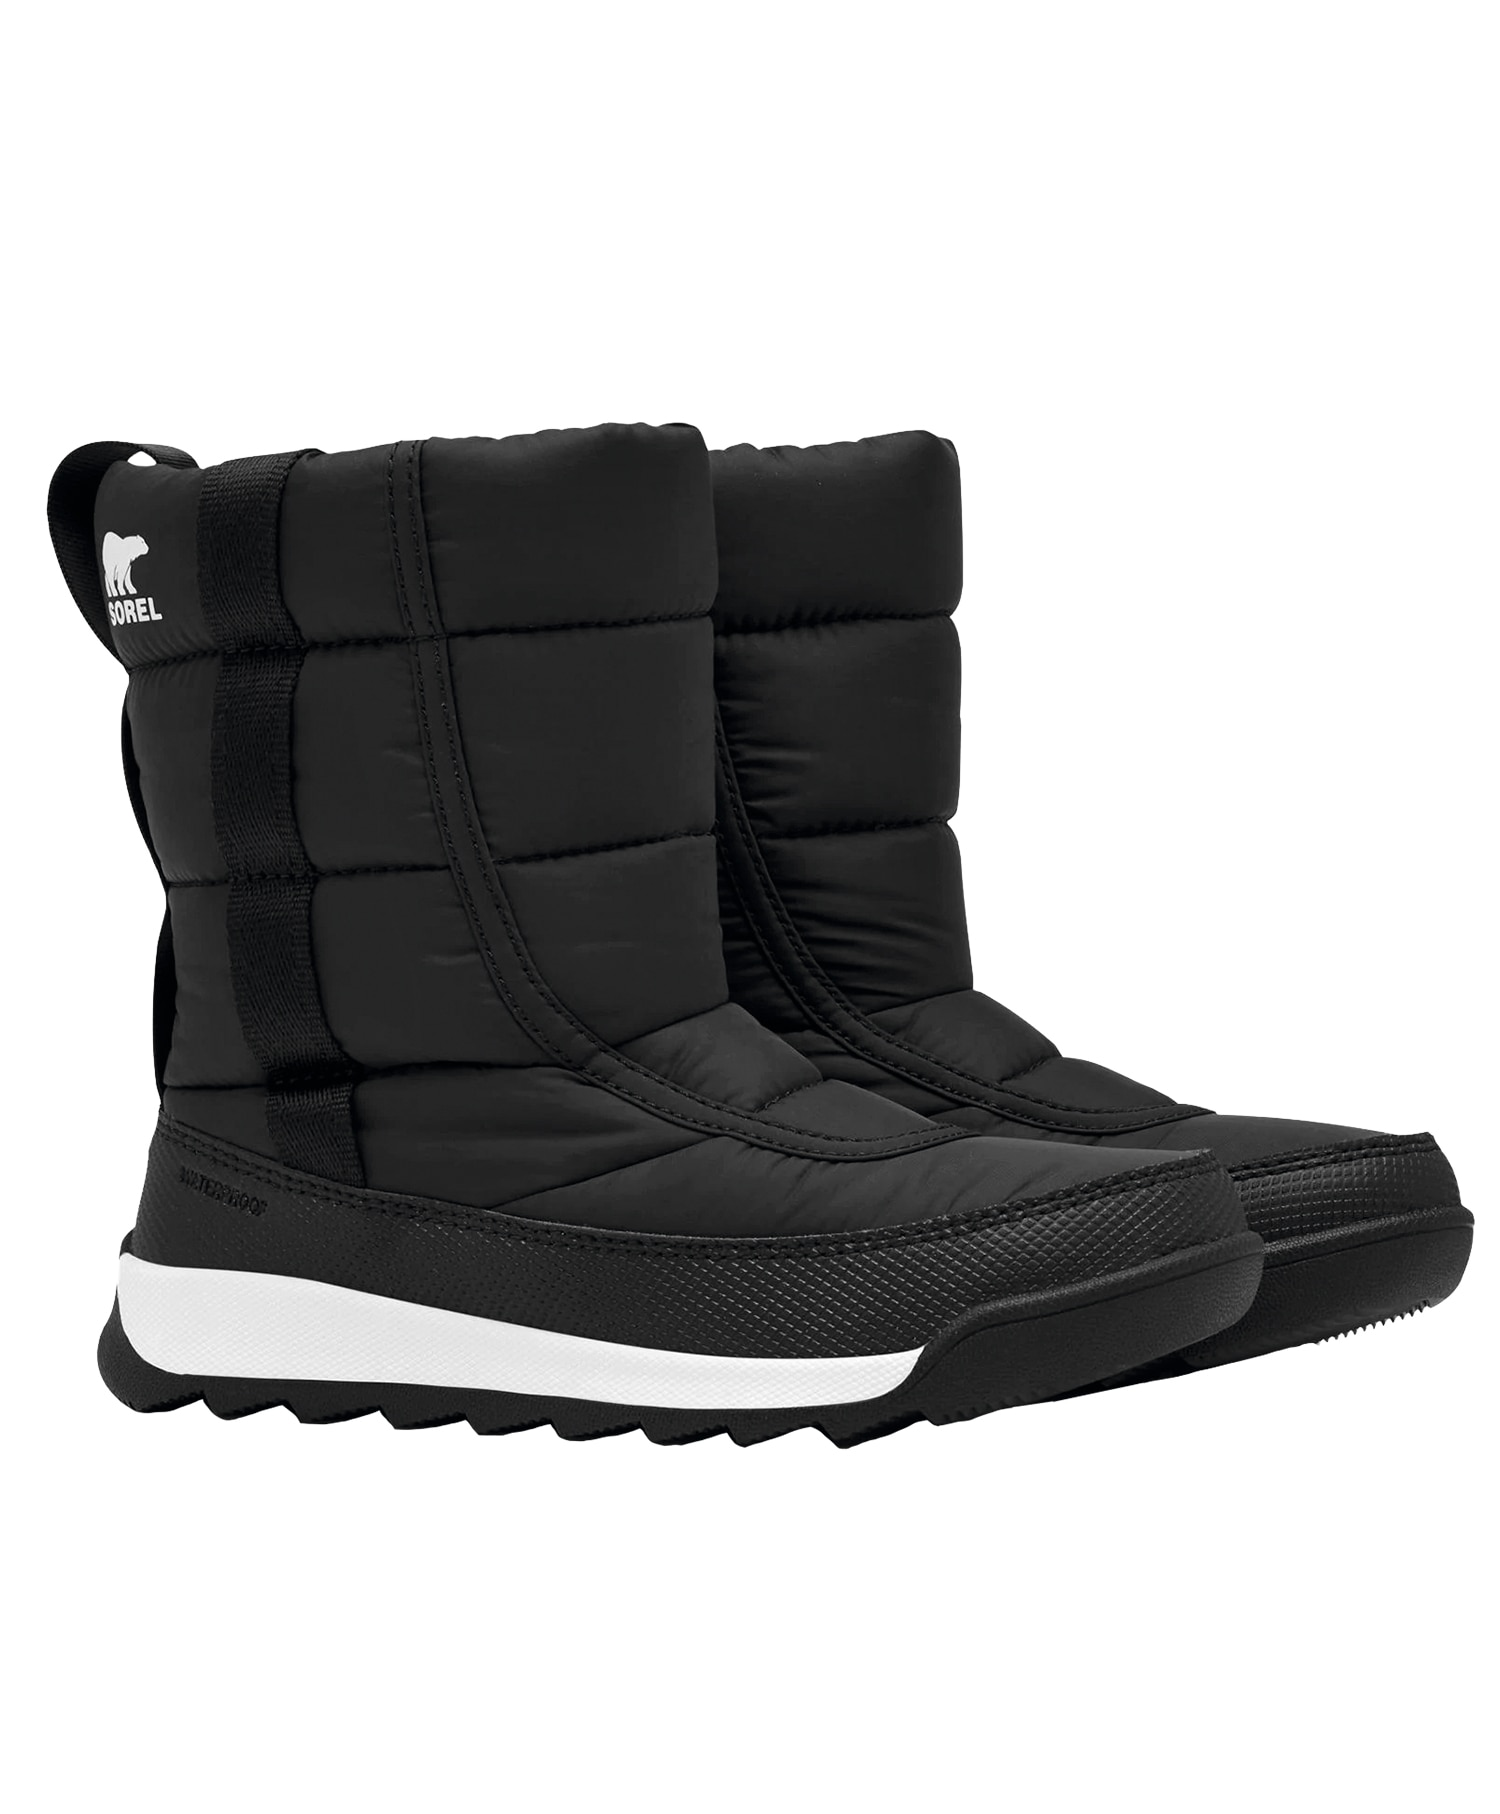 Sorel Whitney II Puffy